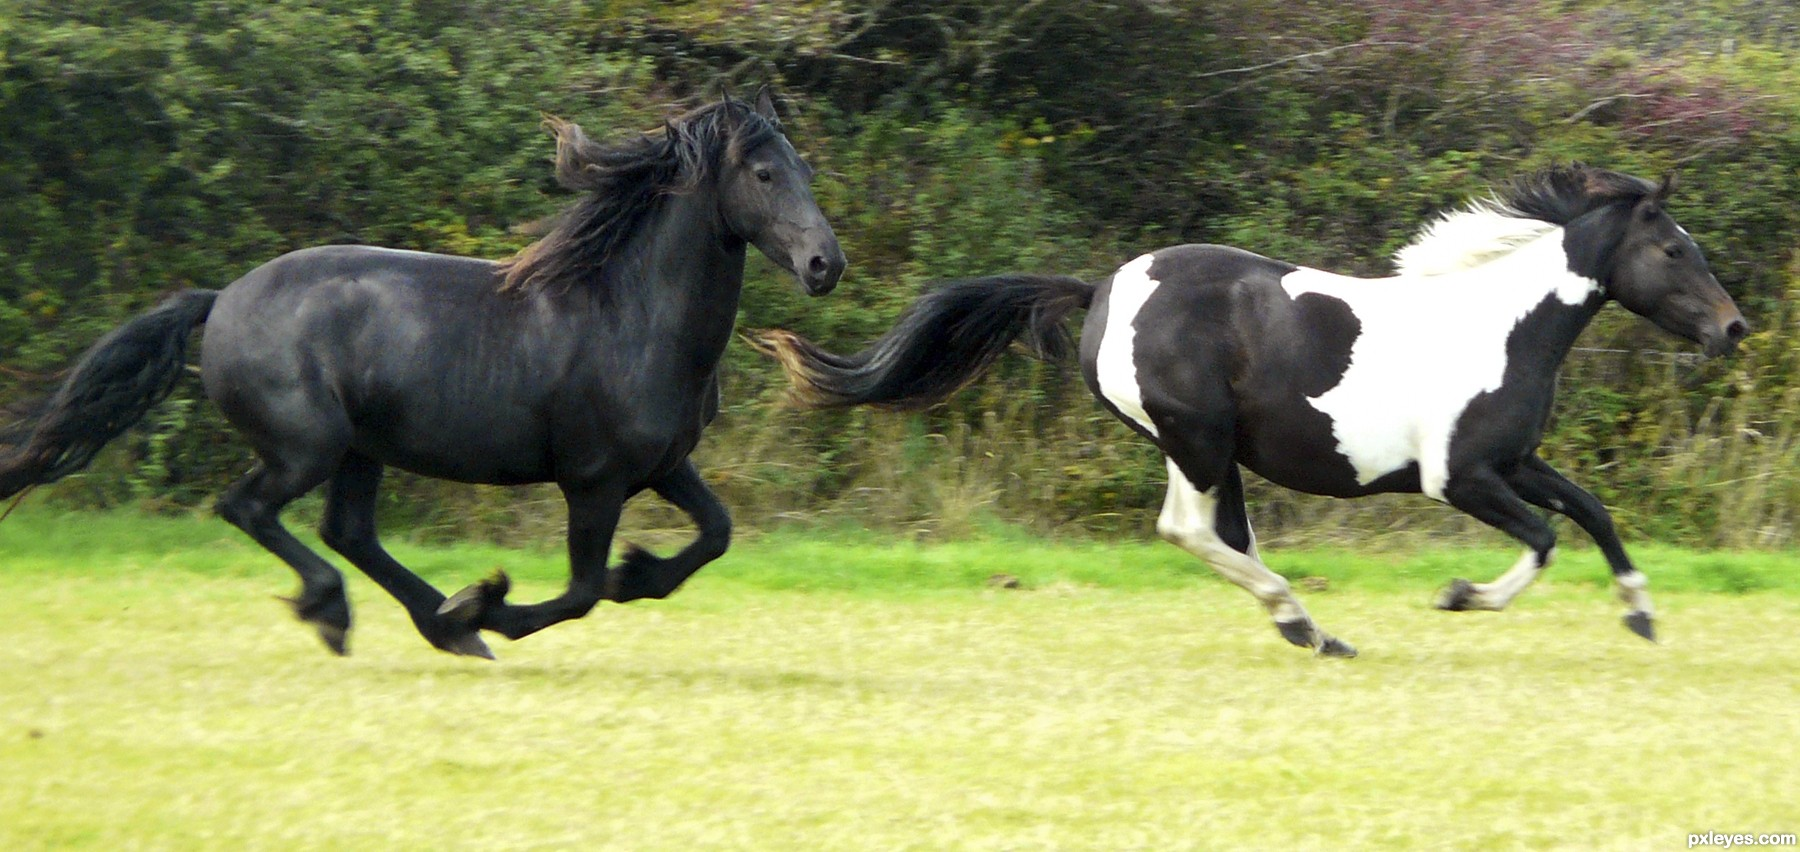 Running horses pictures - photo#28